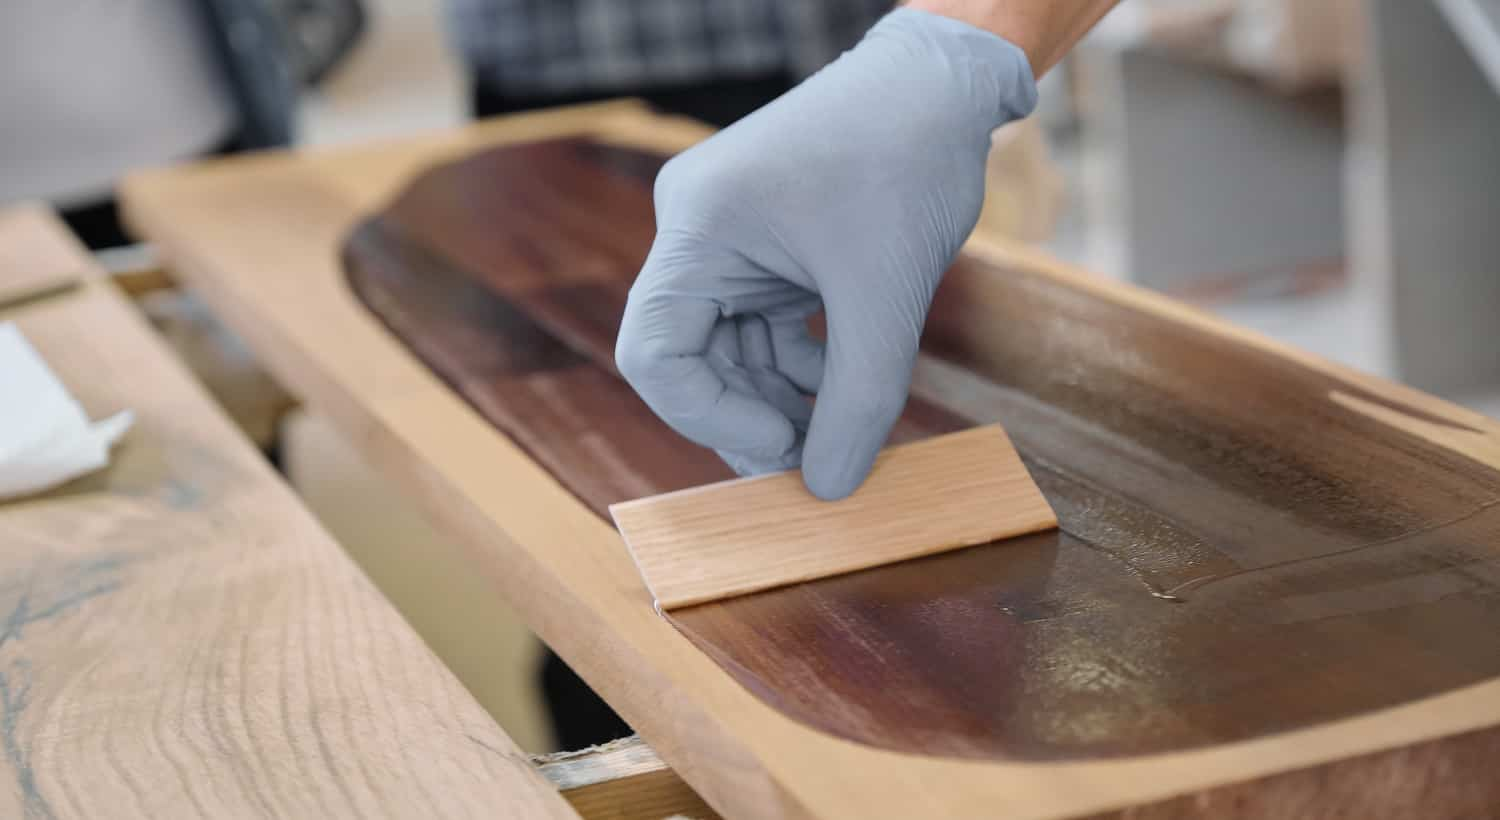 Closeup of workers hand covering wooden plank with finishing protective cover for wood, carpentry furniture woodworking production